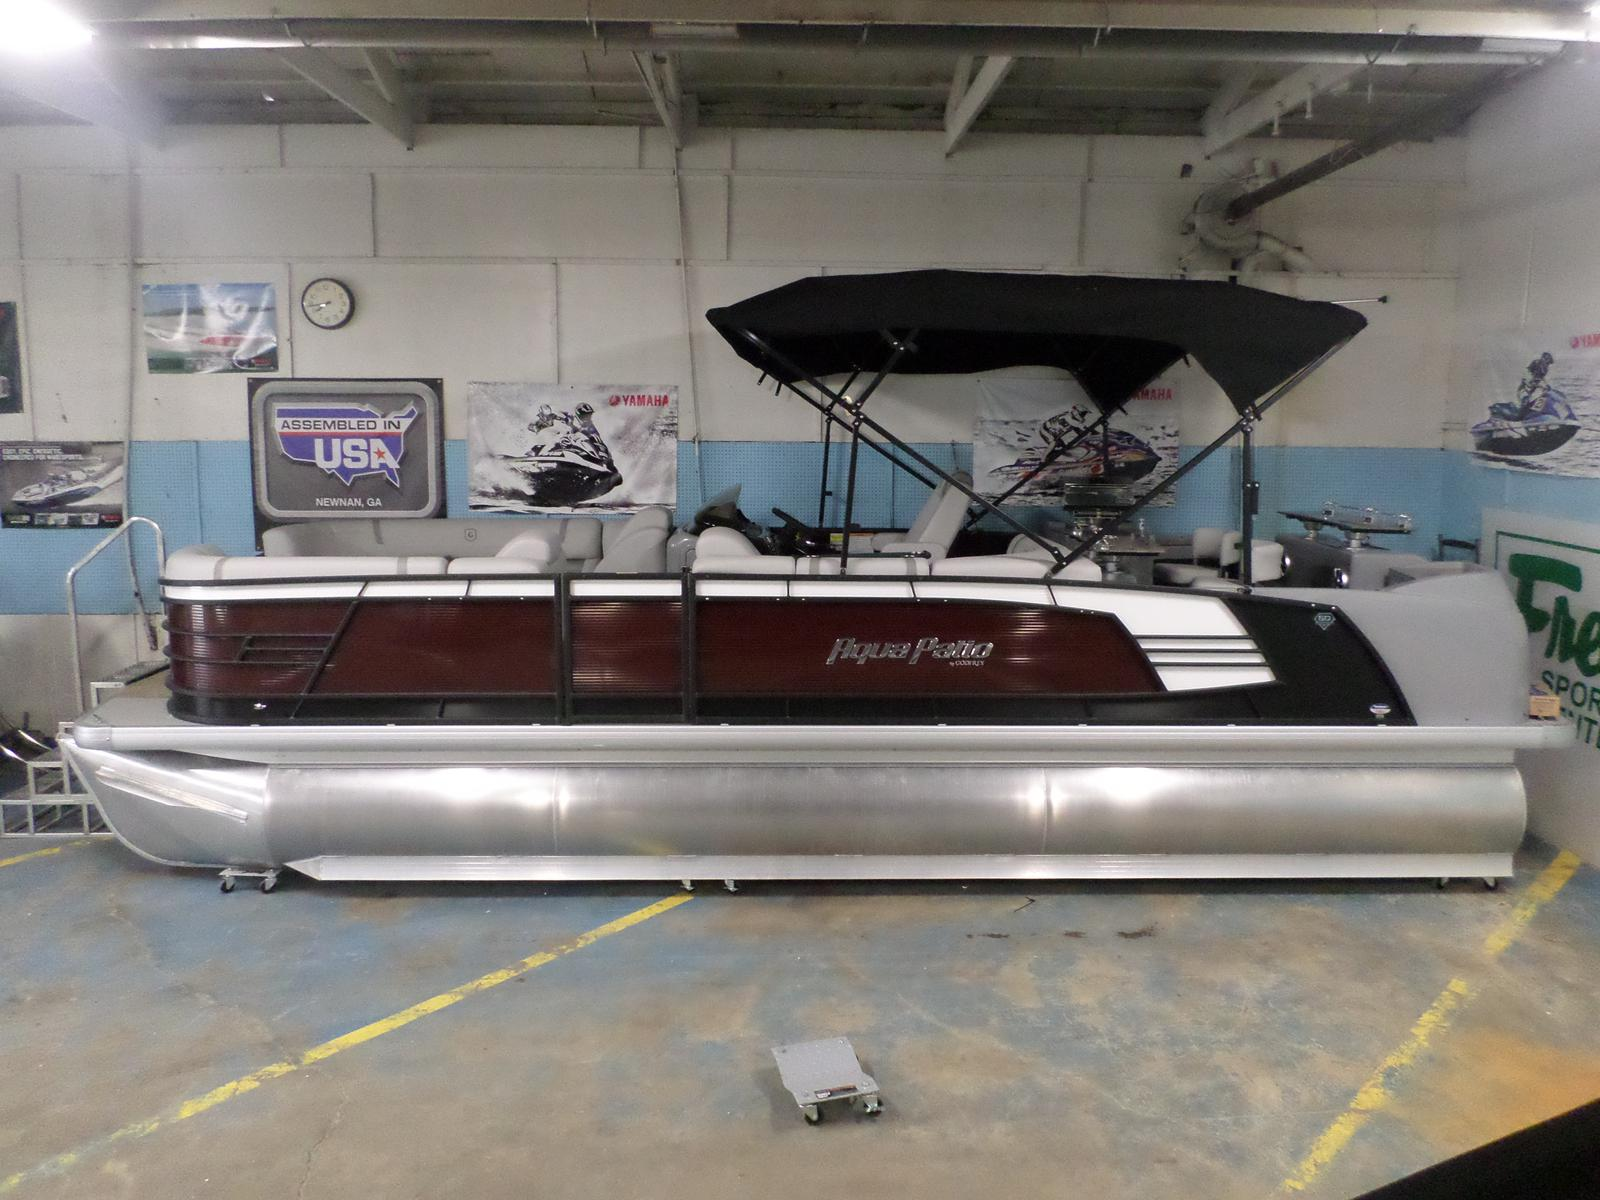 2018 aqua patio ap 259 wbd for sale in fenton mi freeway sports center inc 810 629 2291 - Aqua Patio